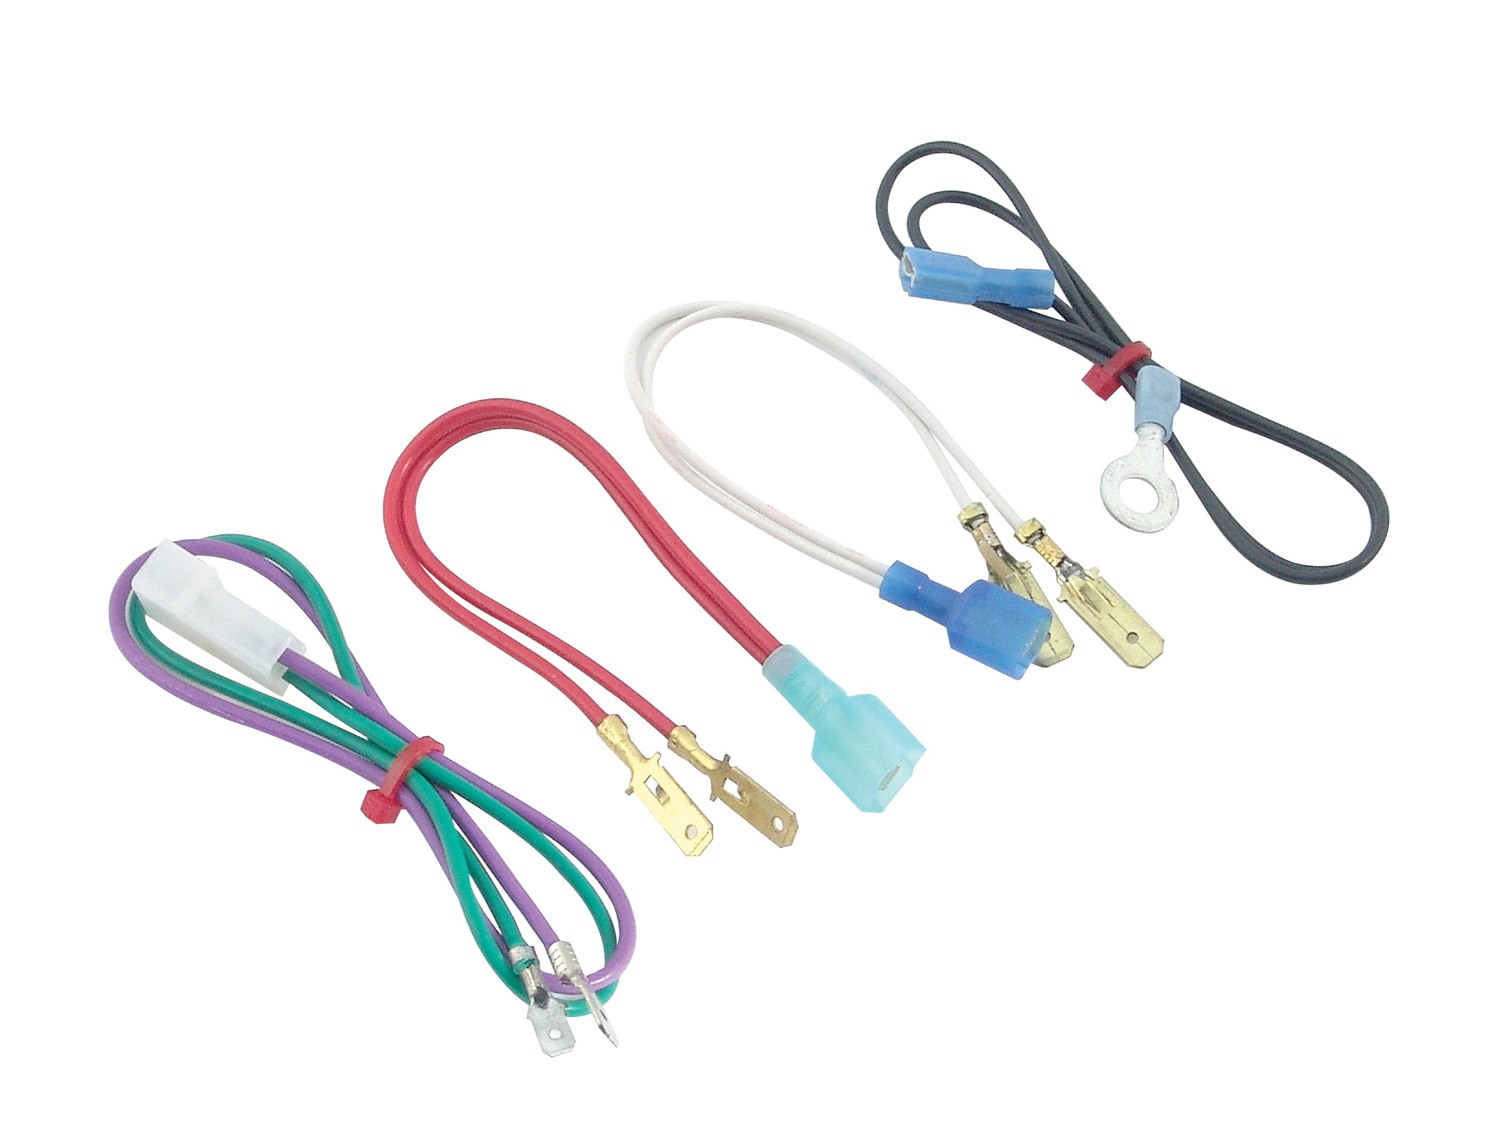 Gm Hei Harness Auto Electrical Wiring Diagram Module Get Free Image About